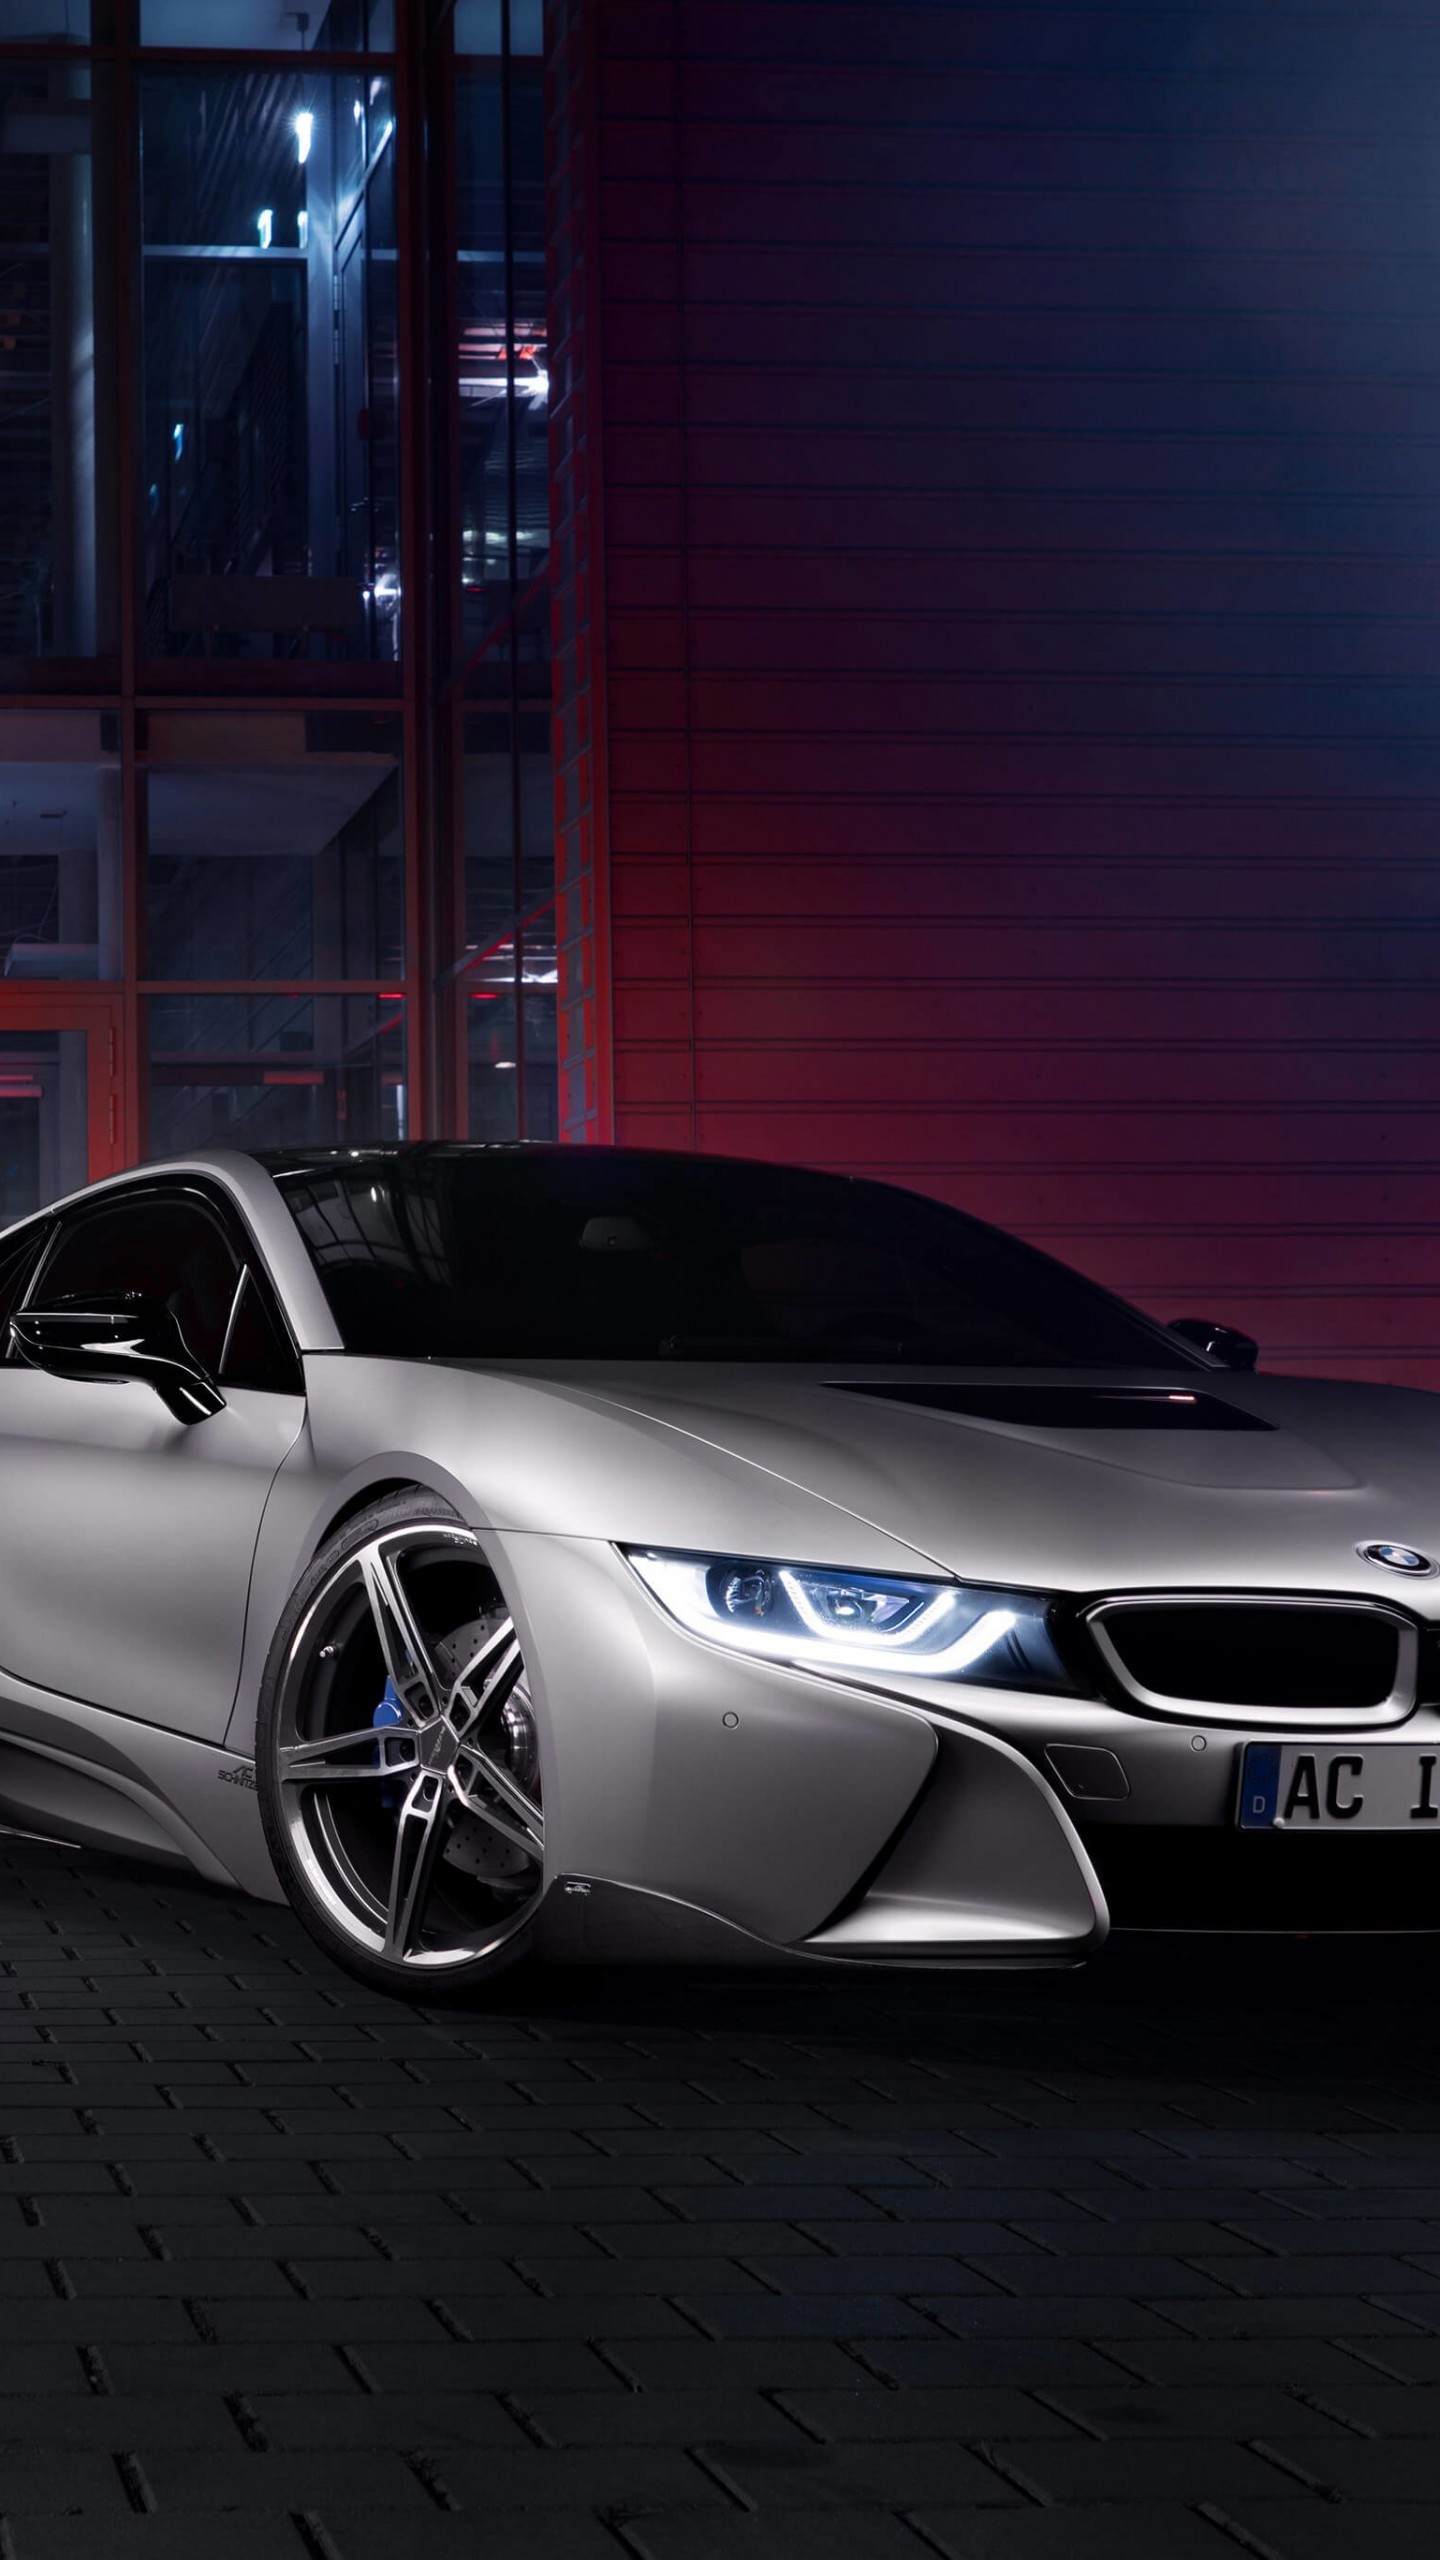 BMW i8 designed by AC Schnitzer Wallpaper for Google Nexus 6